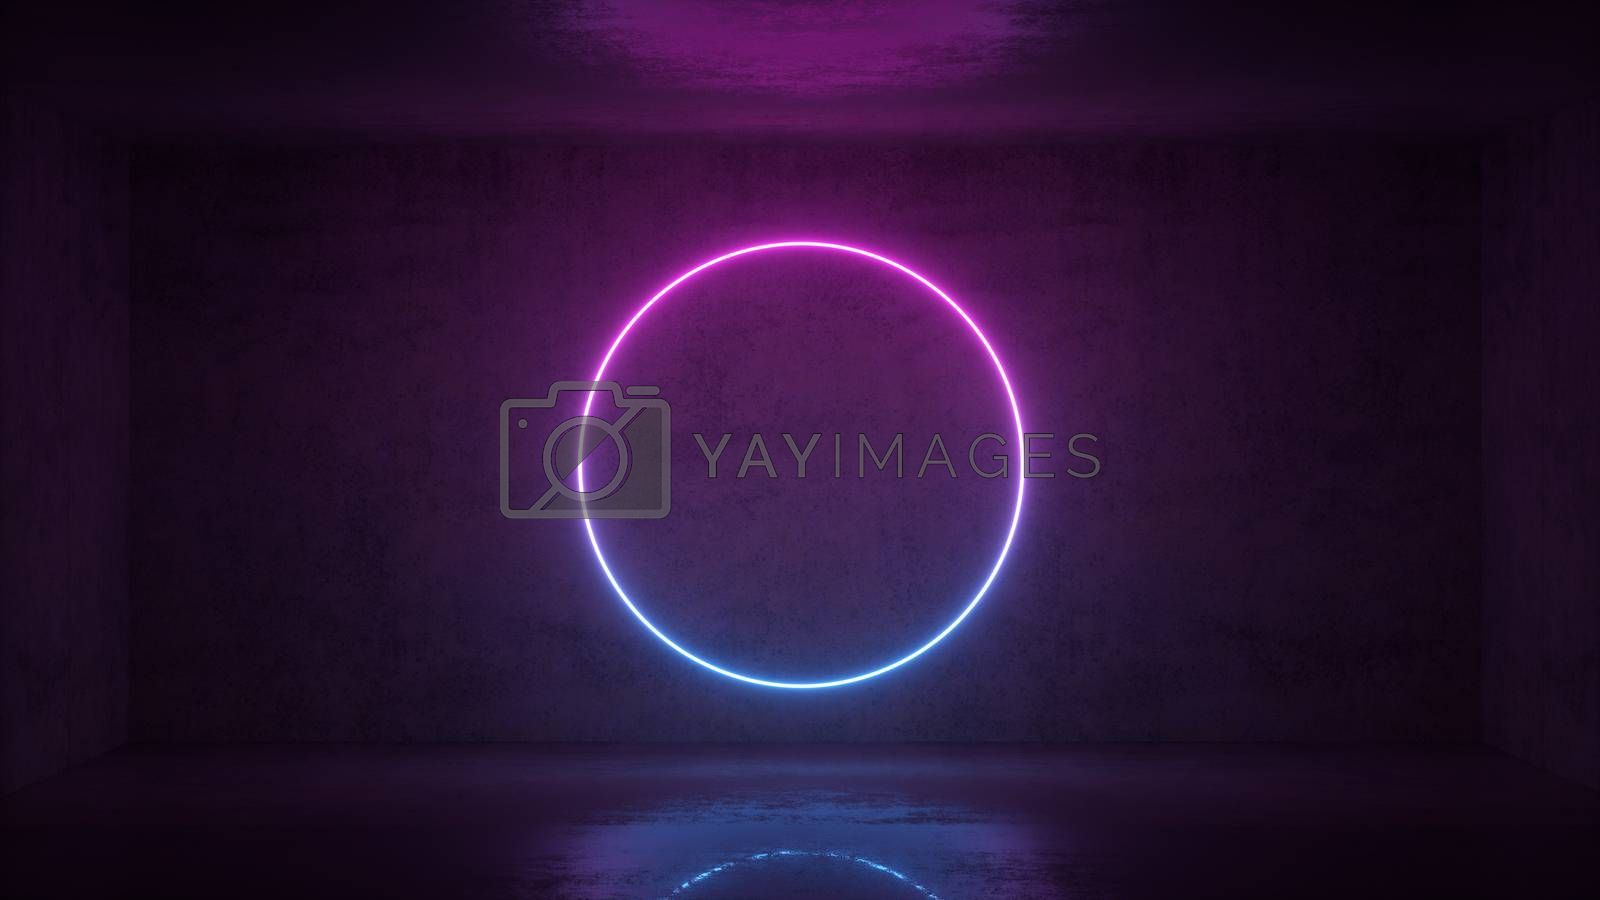 3d Render Of Neon Circle Frame On Background In The Room Banner Design Retrowave Synthwave Vaporwave Illustration Royalty Free Stock Image Stock Photos Royalty Free Images Vectors Footage Yayimages